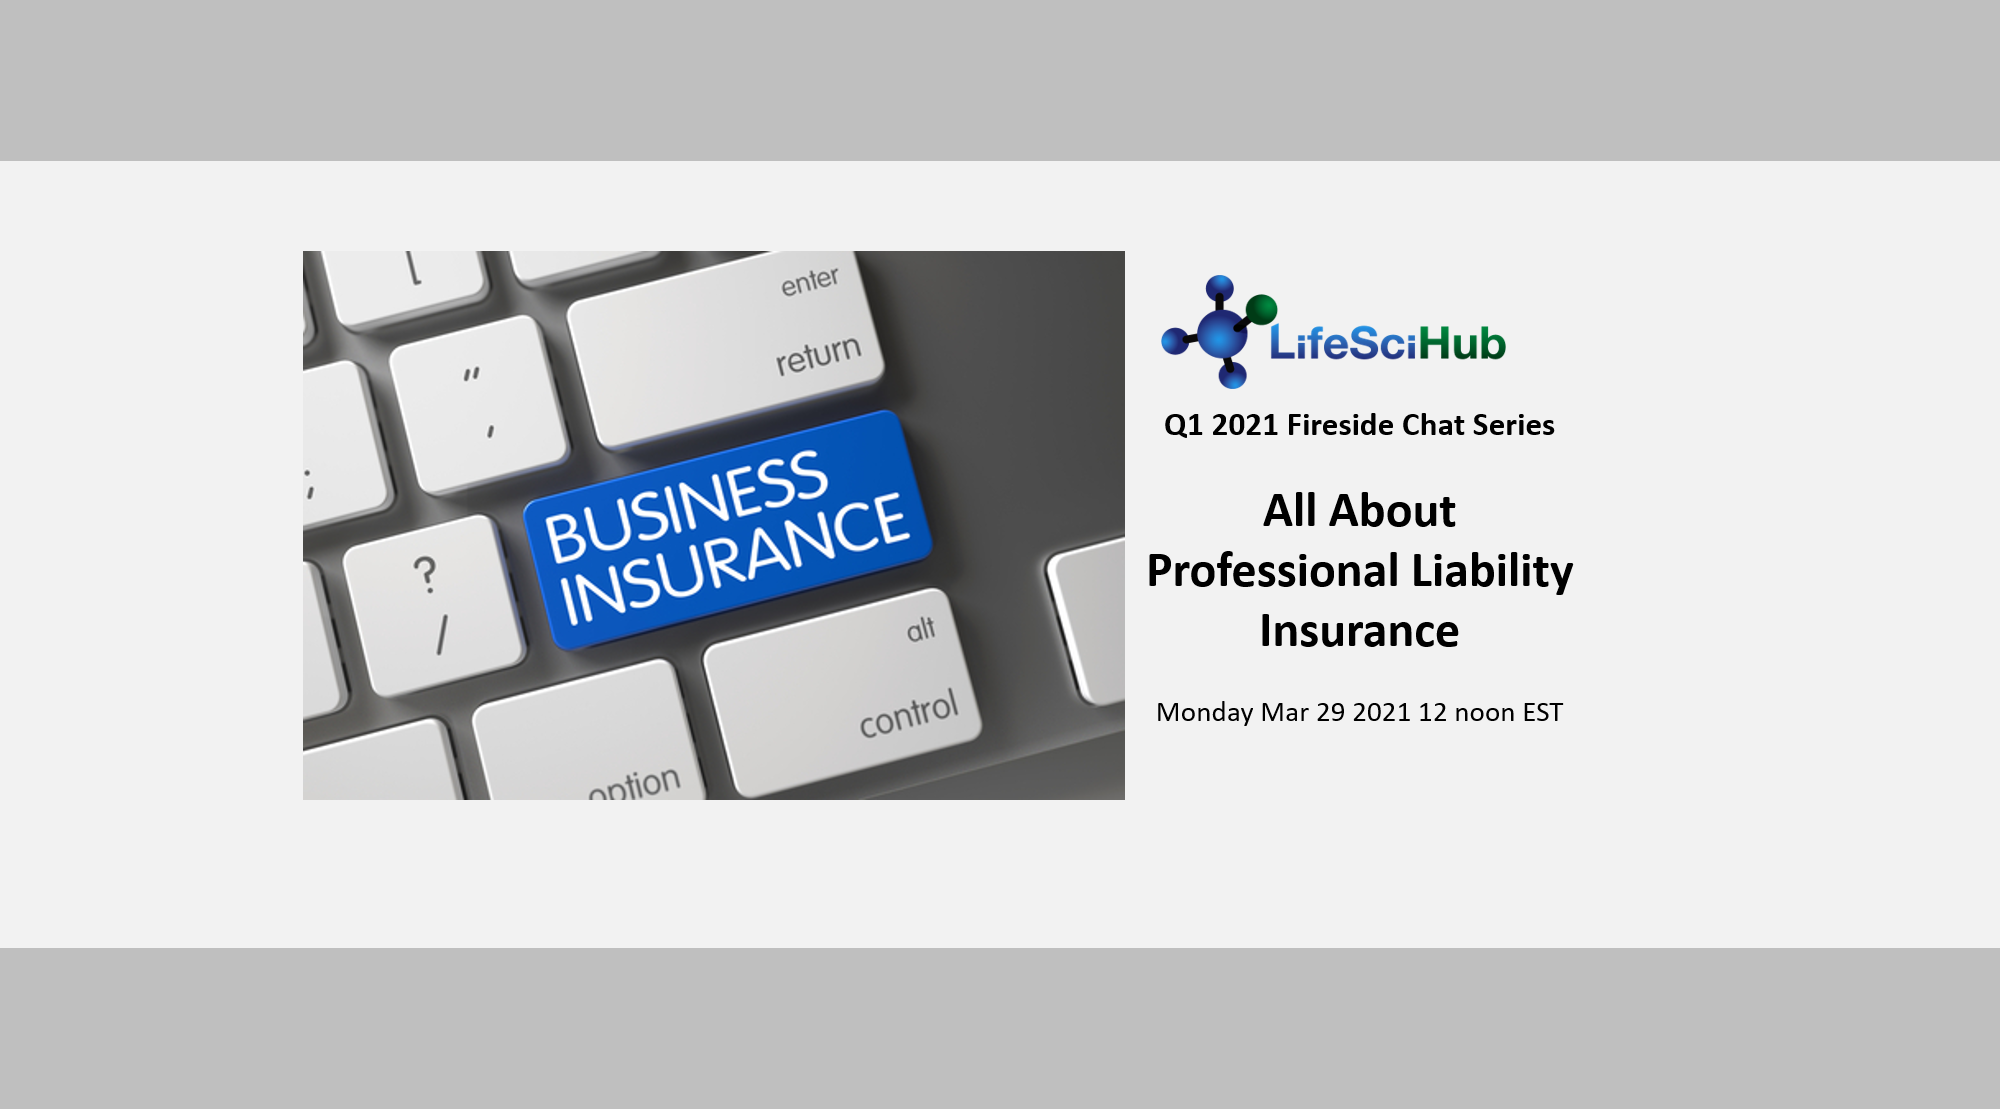 LifeSciHub Fireside Chat:  All About Professional Liability Insurance